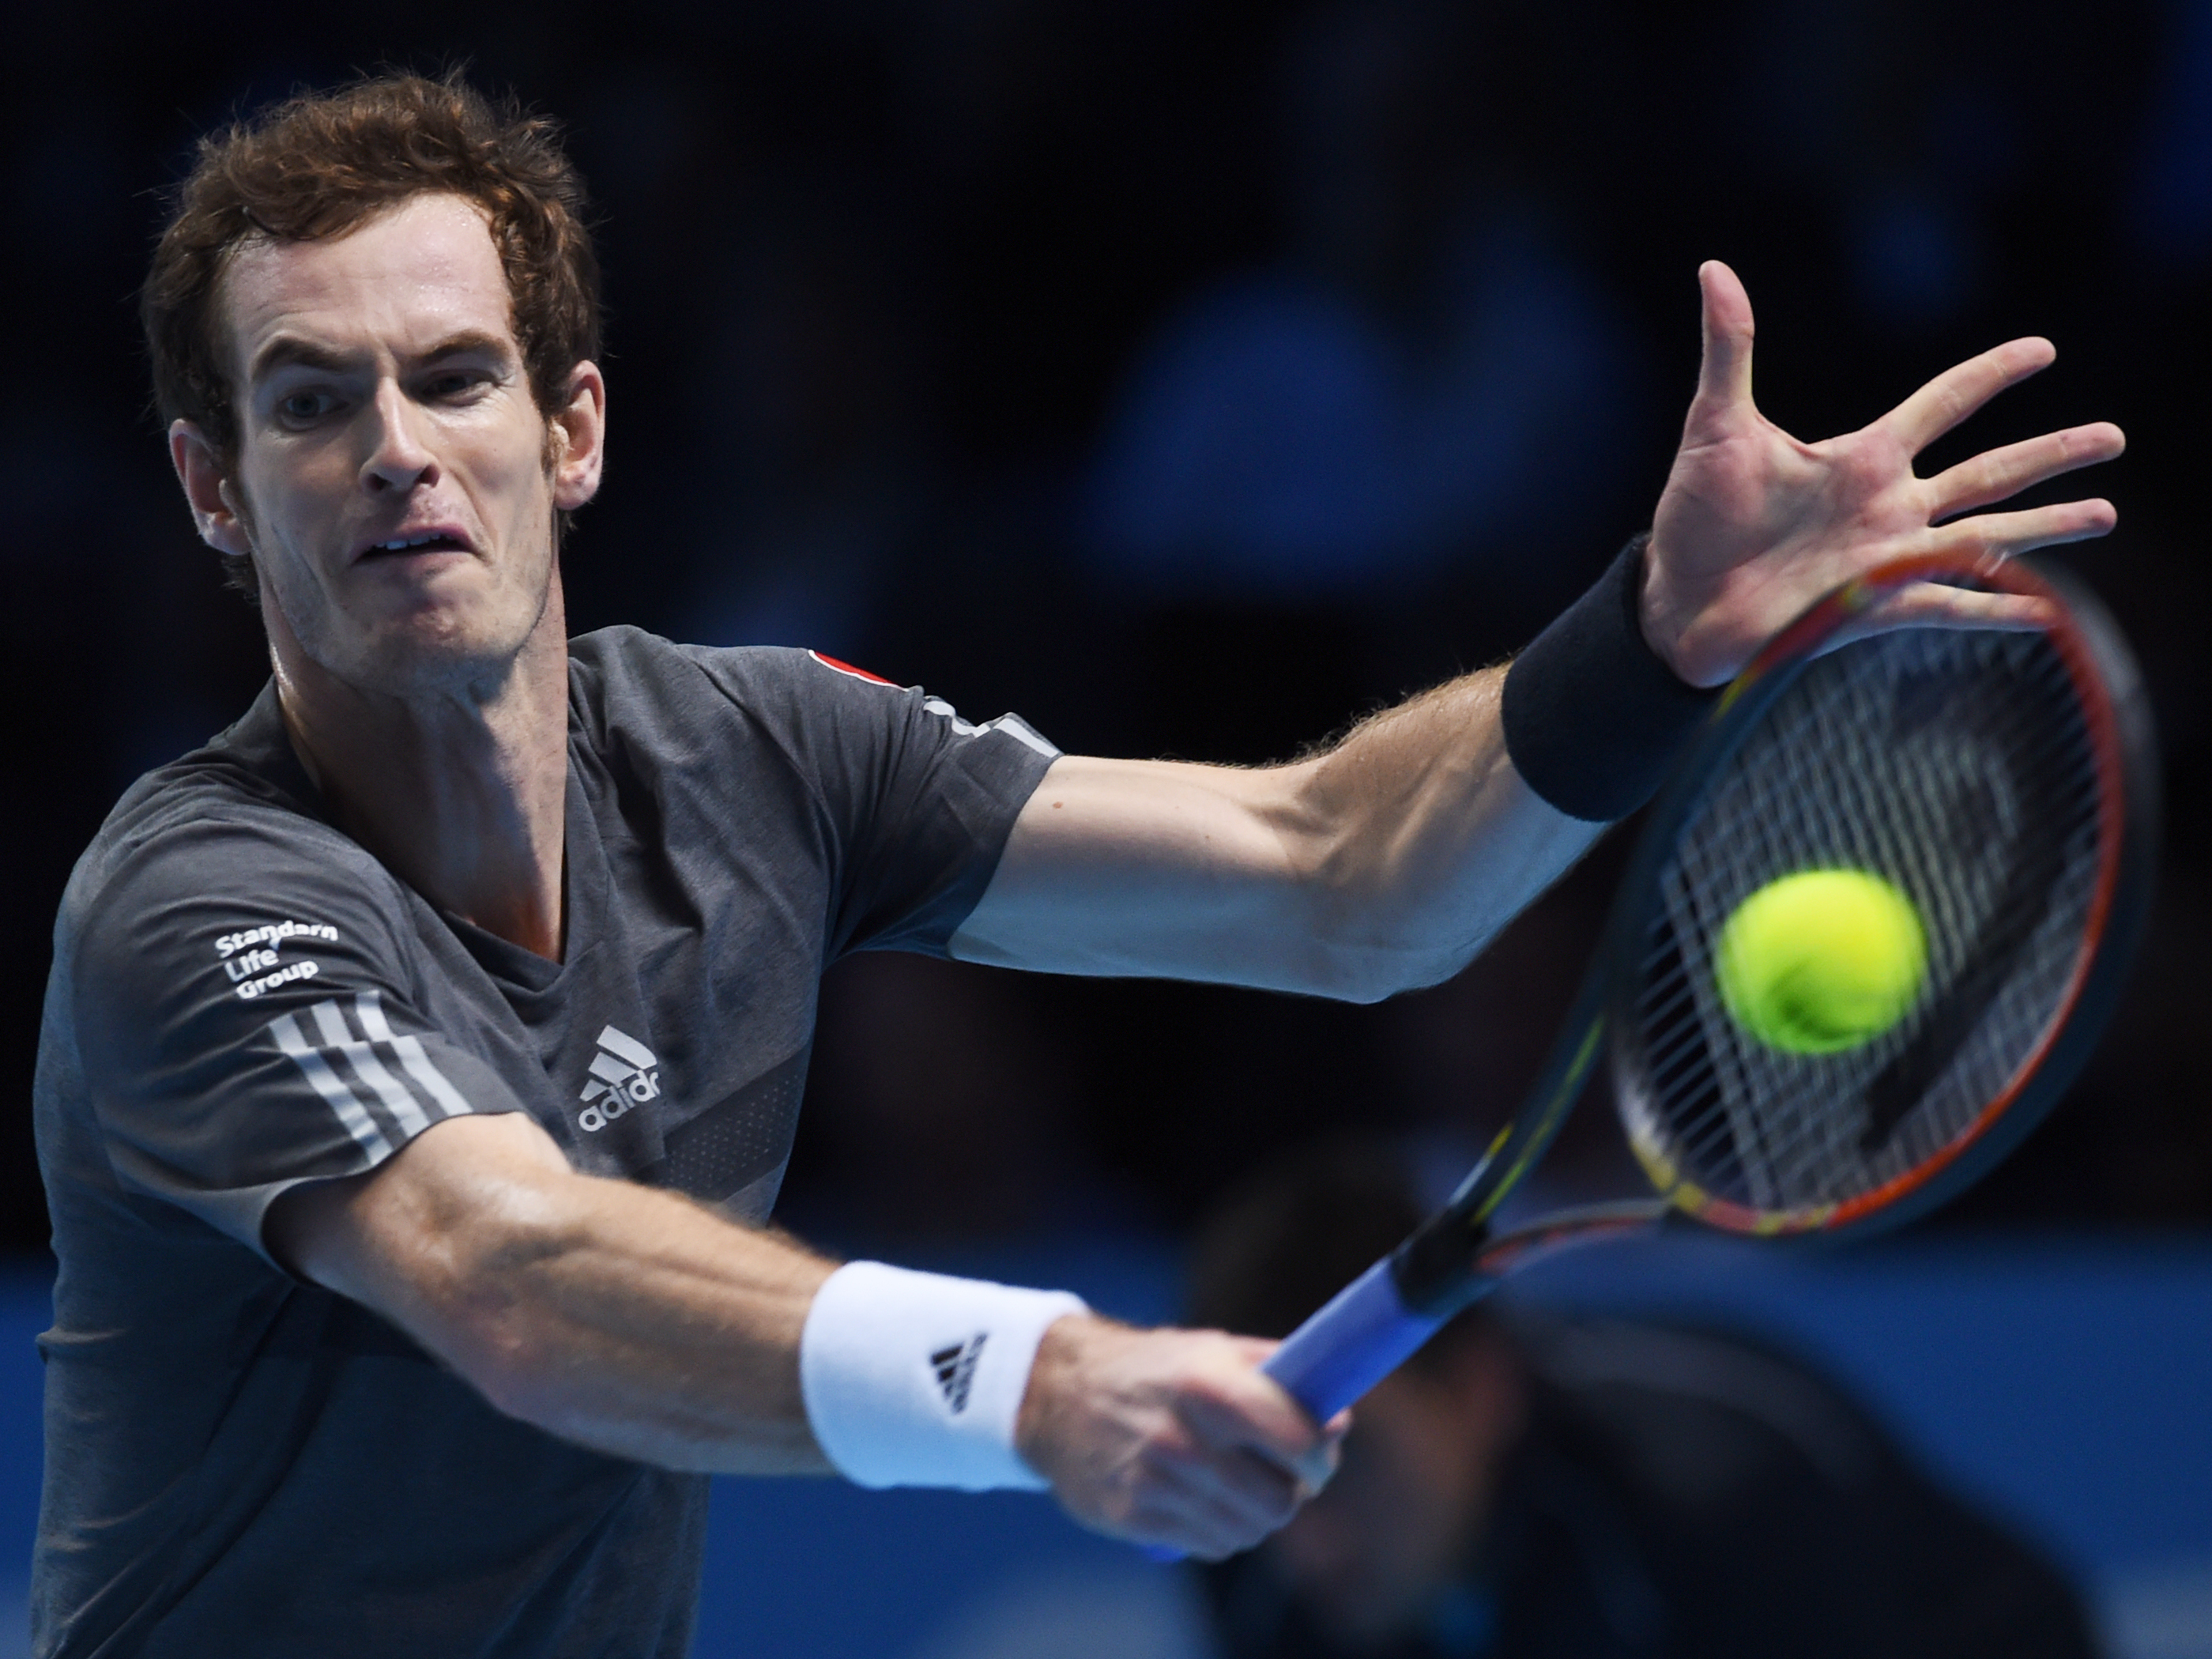 Tennis Players Are Getting Their First Servings Of Sabermetrics